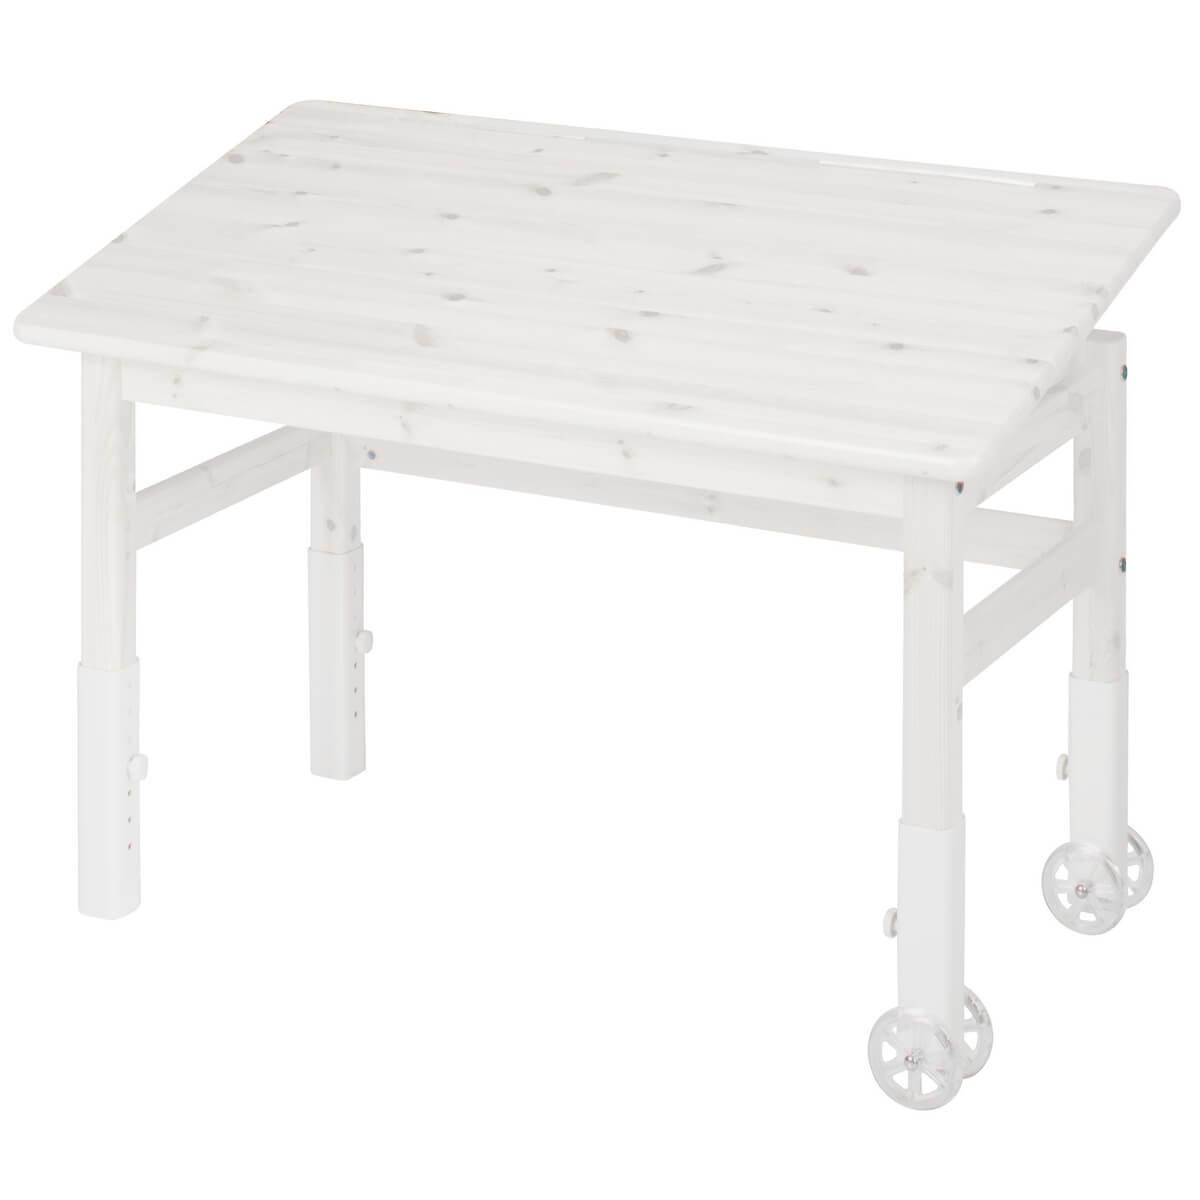 Escritorio tablero inclinable CLASSIC Flexa blanco cal